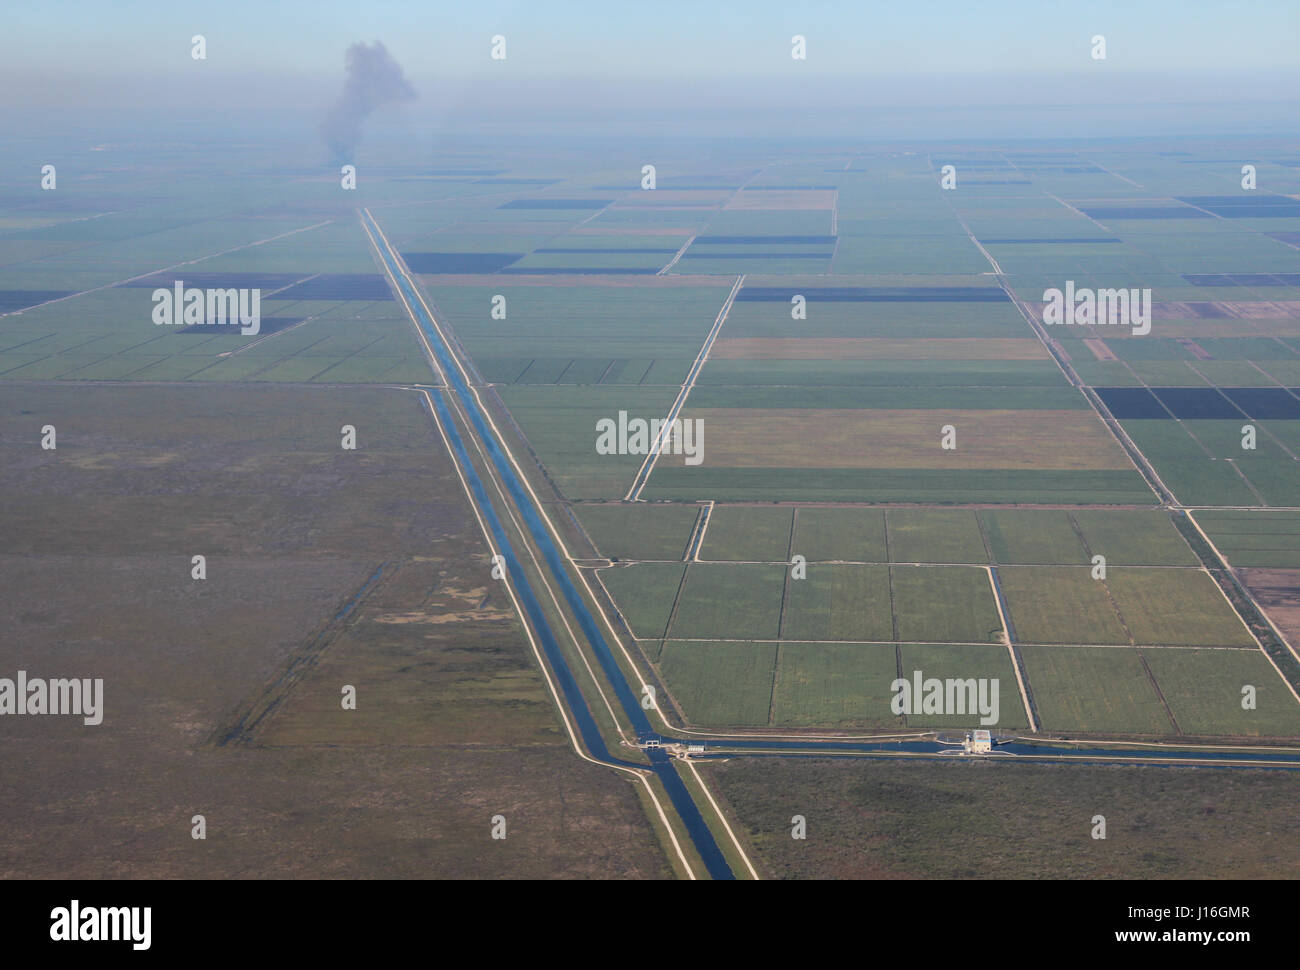 Aerial view of sugar cane fields, farmland and drainage canals in the Everglades Agricultural Area, Florida Stock Photo